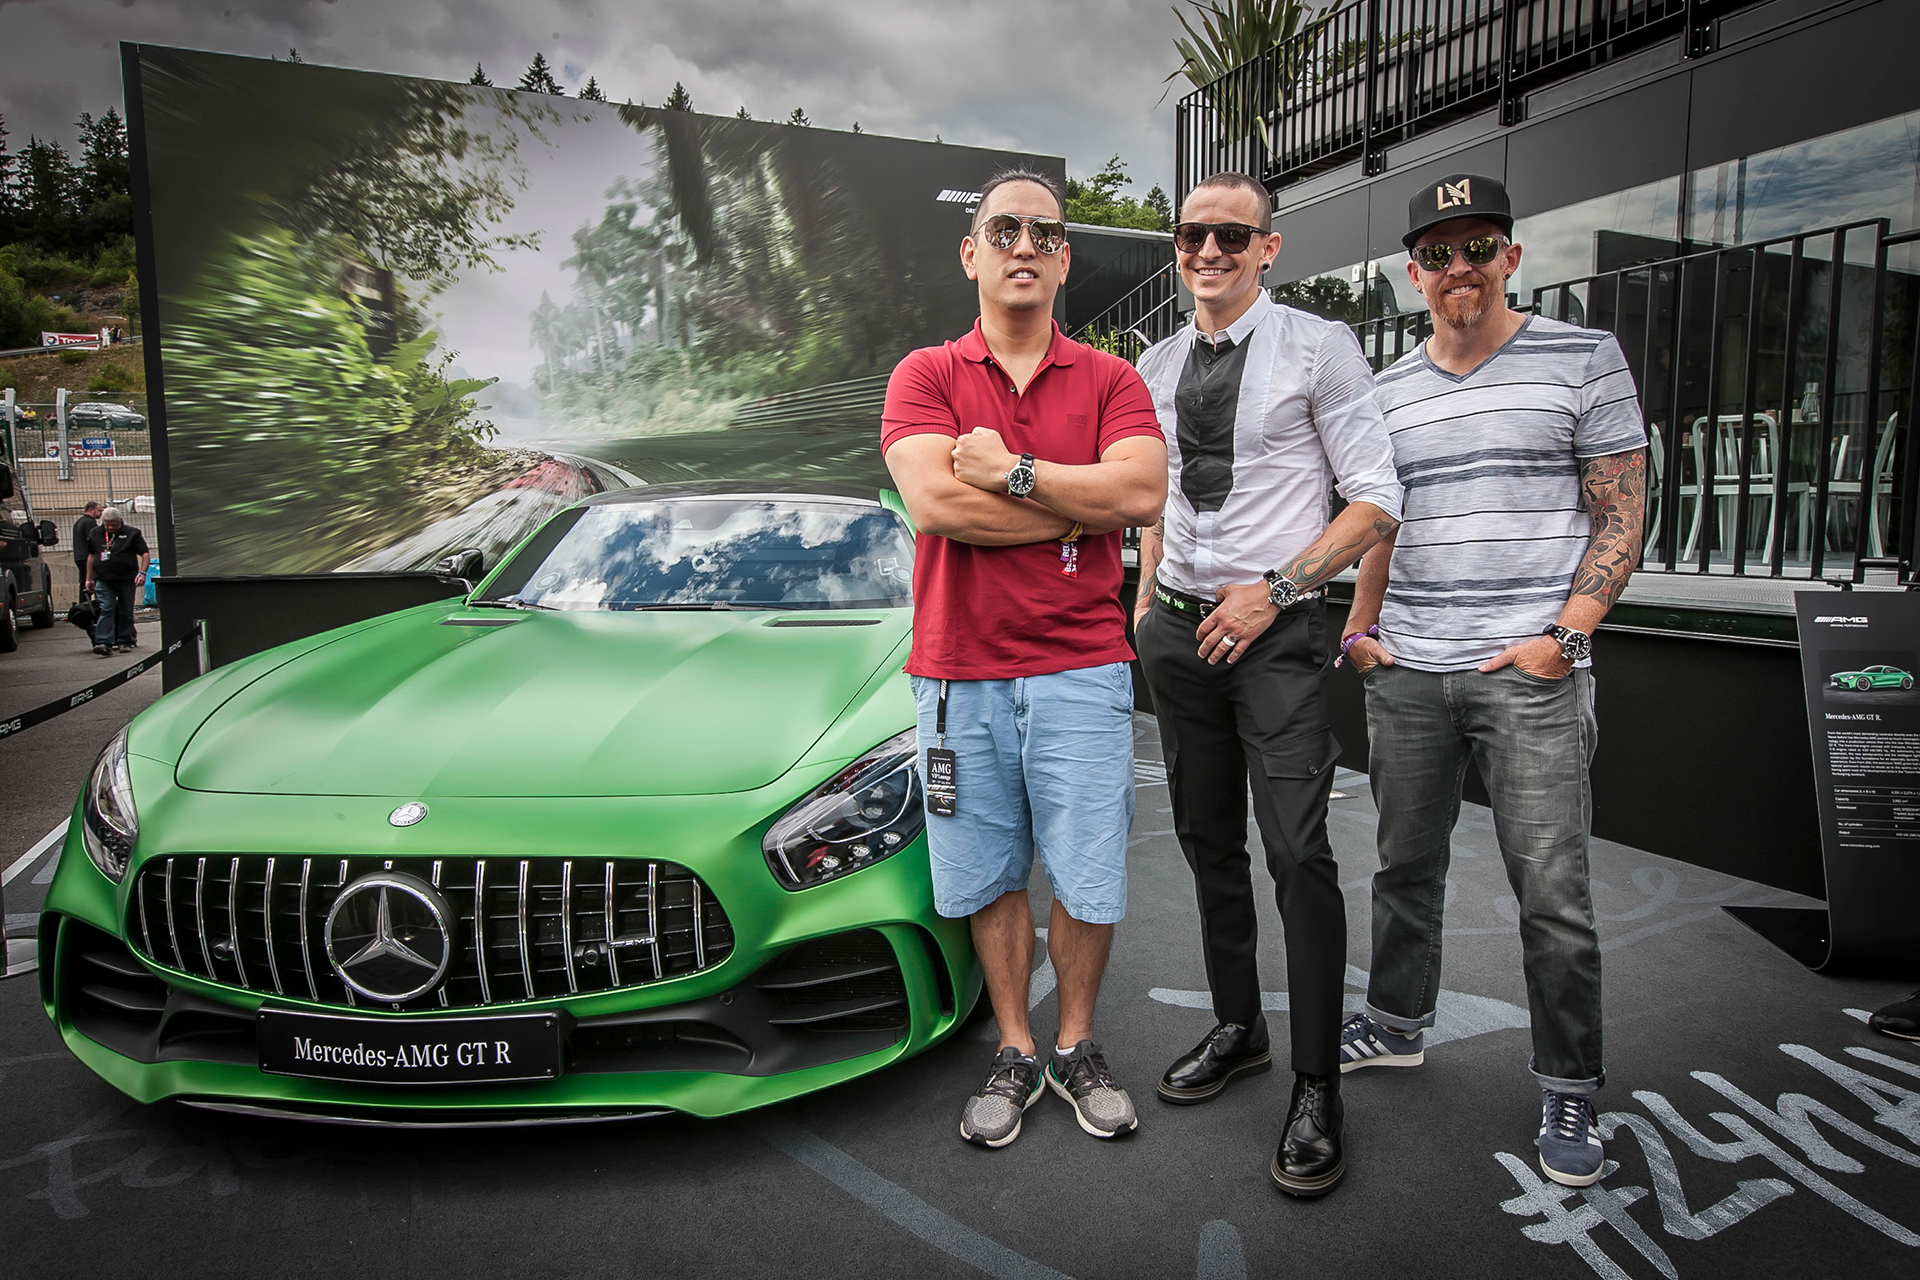 Mercedes-AMG GT S - Team Linkin Park - Dave F - Mr Hahn - Chester - 24 hours race Spa 2016 - Photo Daimler AG